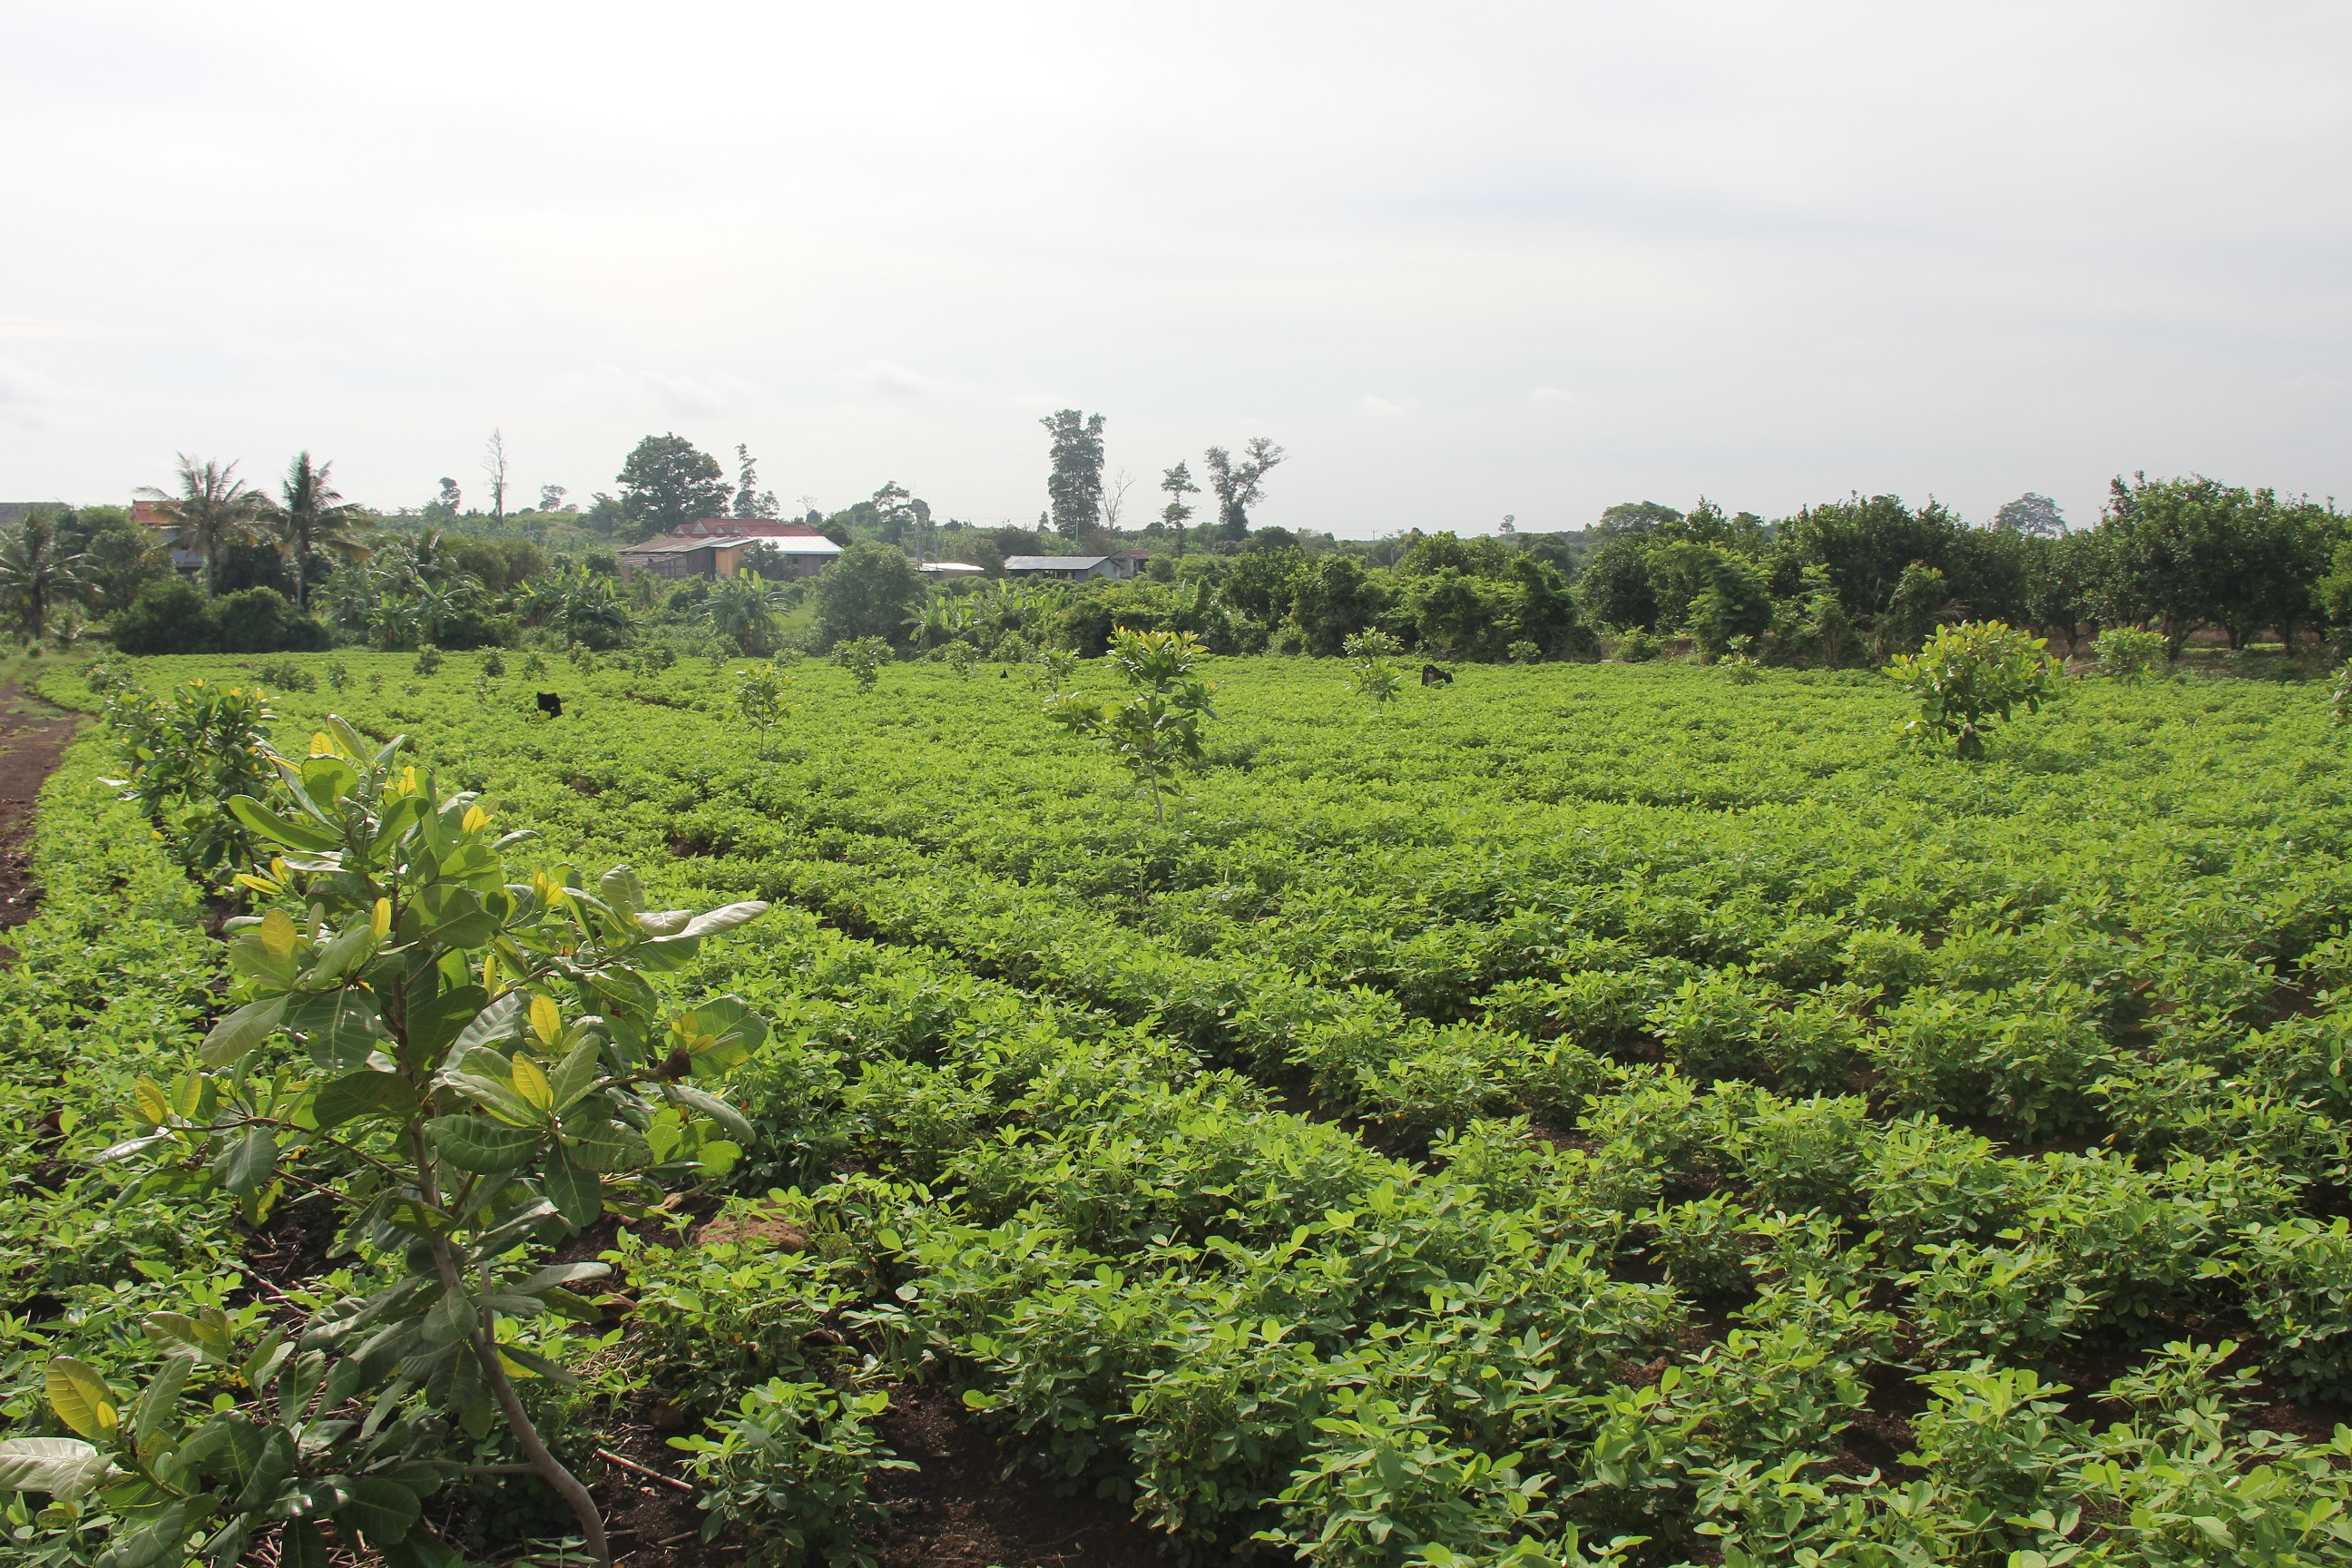 Intercropping of cashew nut trees with peanut on the uplands of  Tbaeng Mean Chey District